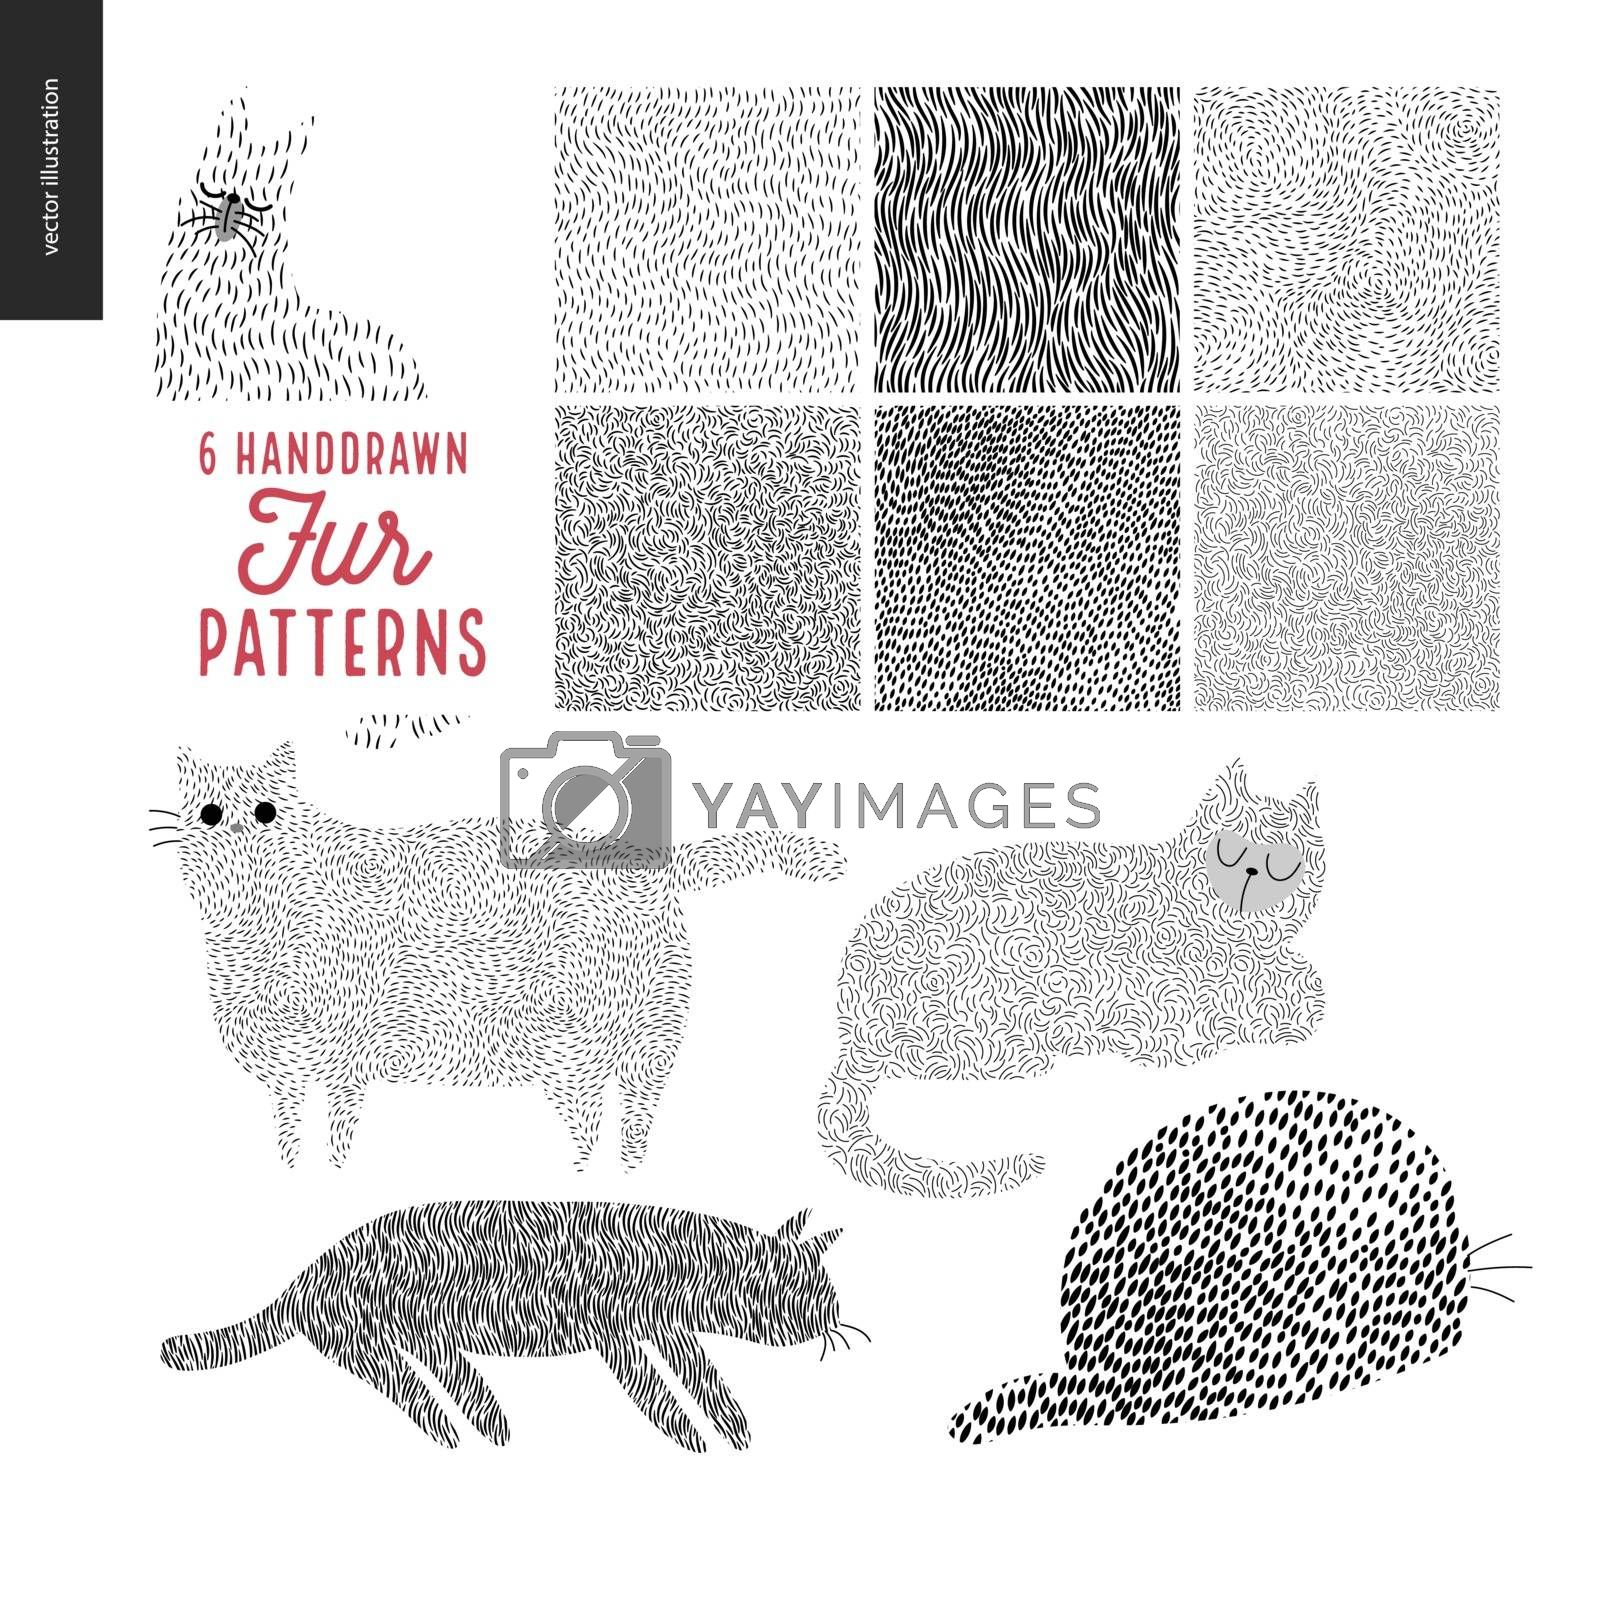 Handdrawn patterns with cats. Fur patterns with an usage example. Cats drawn with fur pattern sitting and standing in various poses.